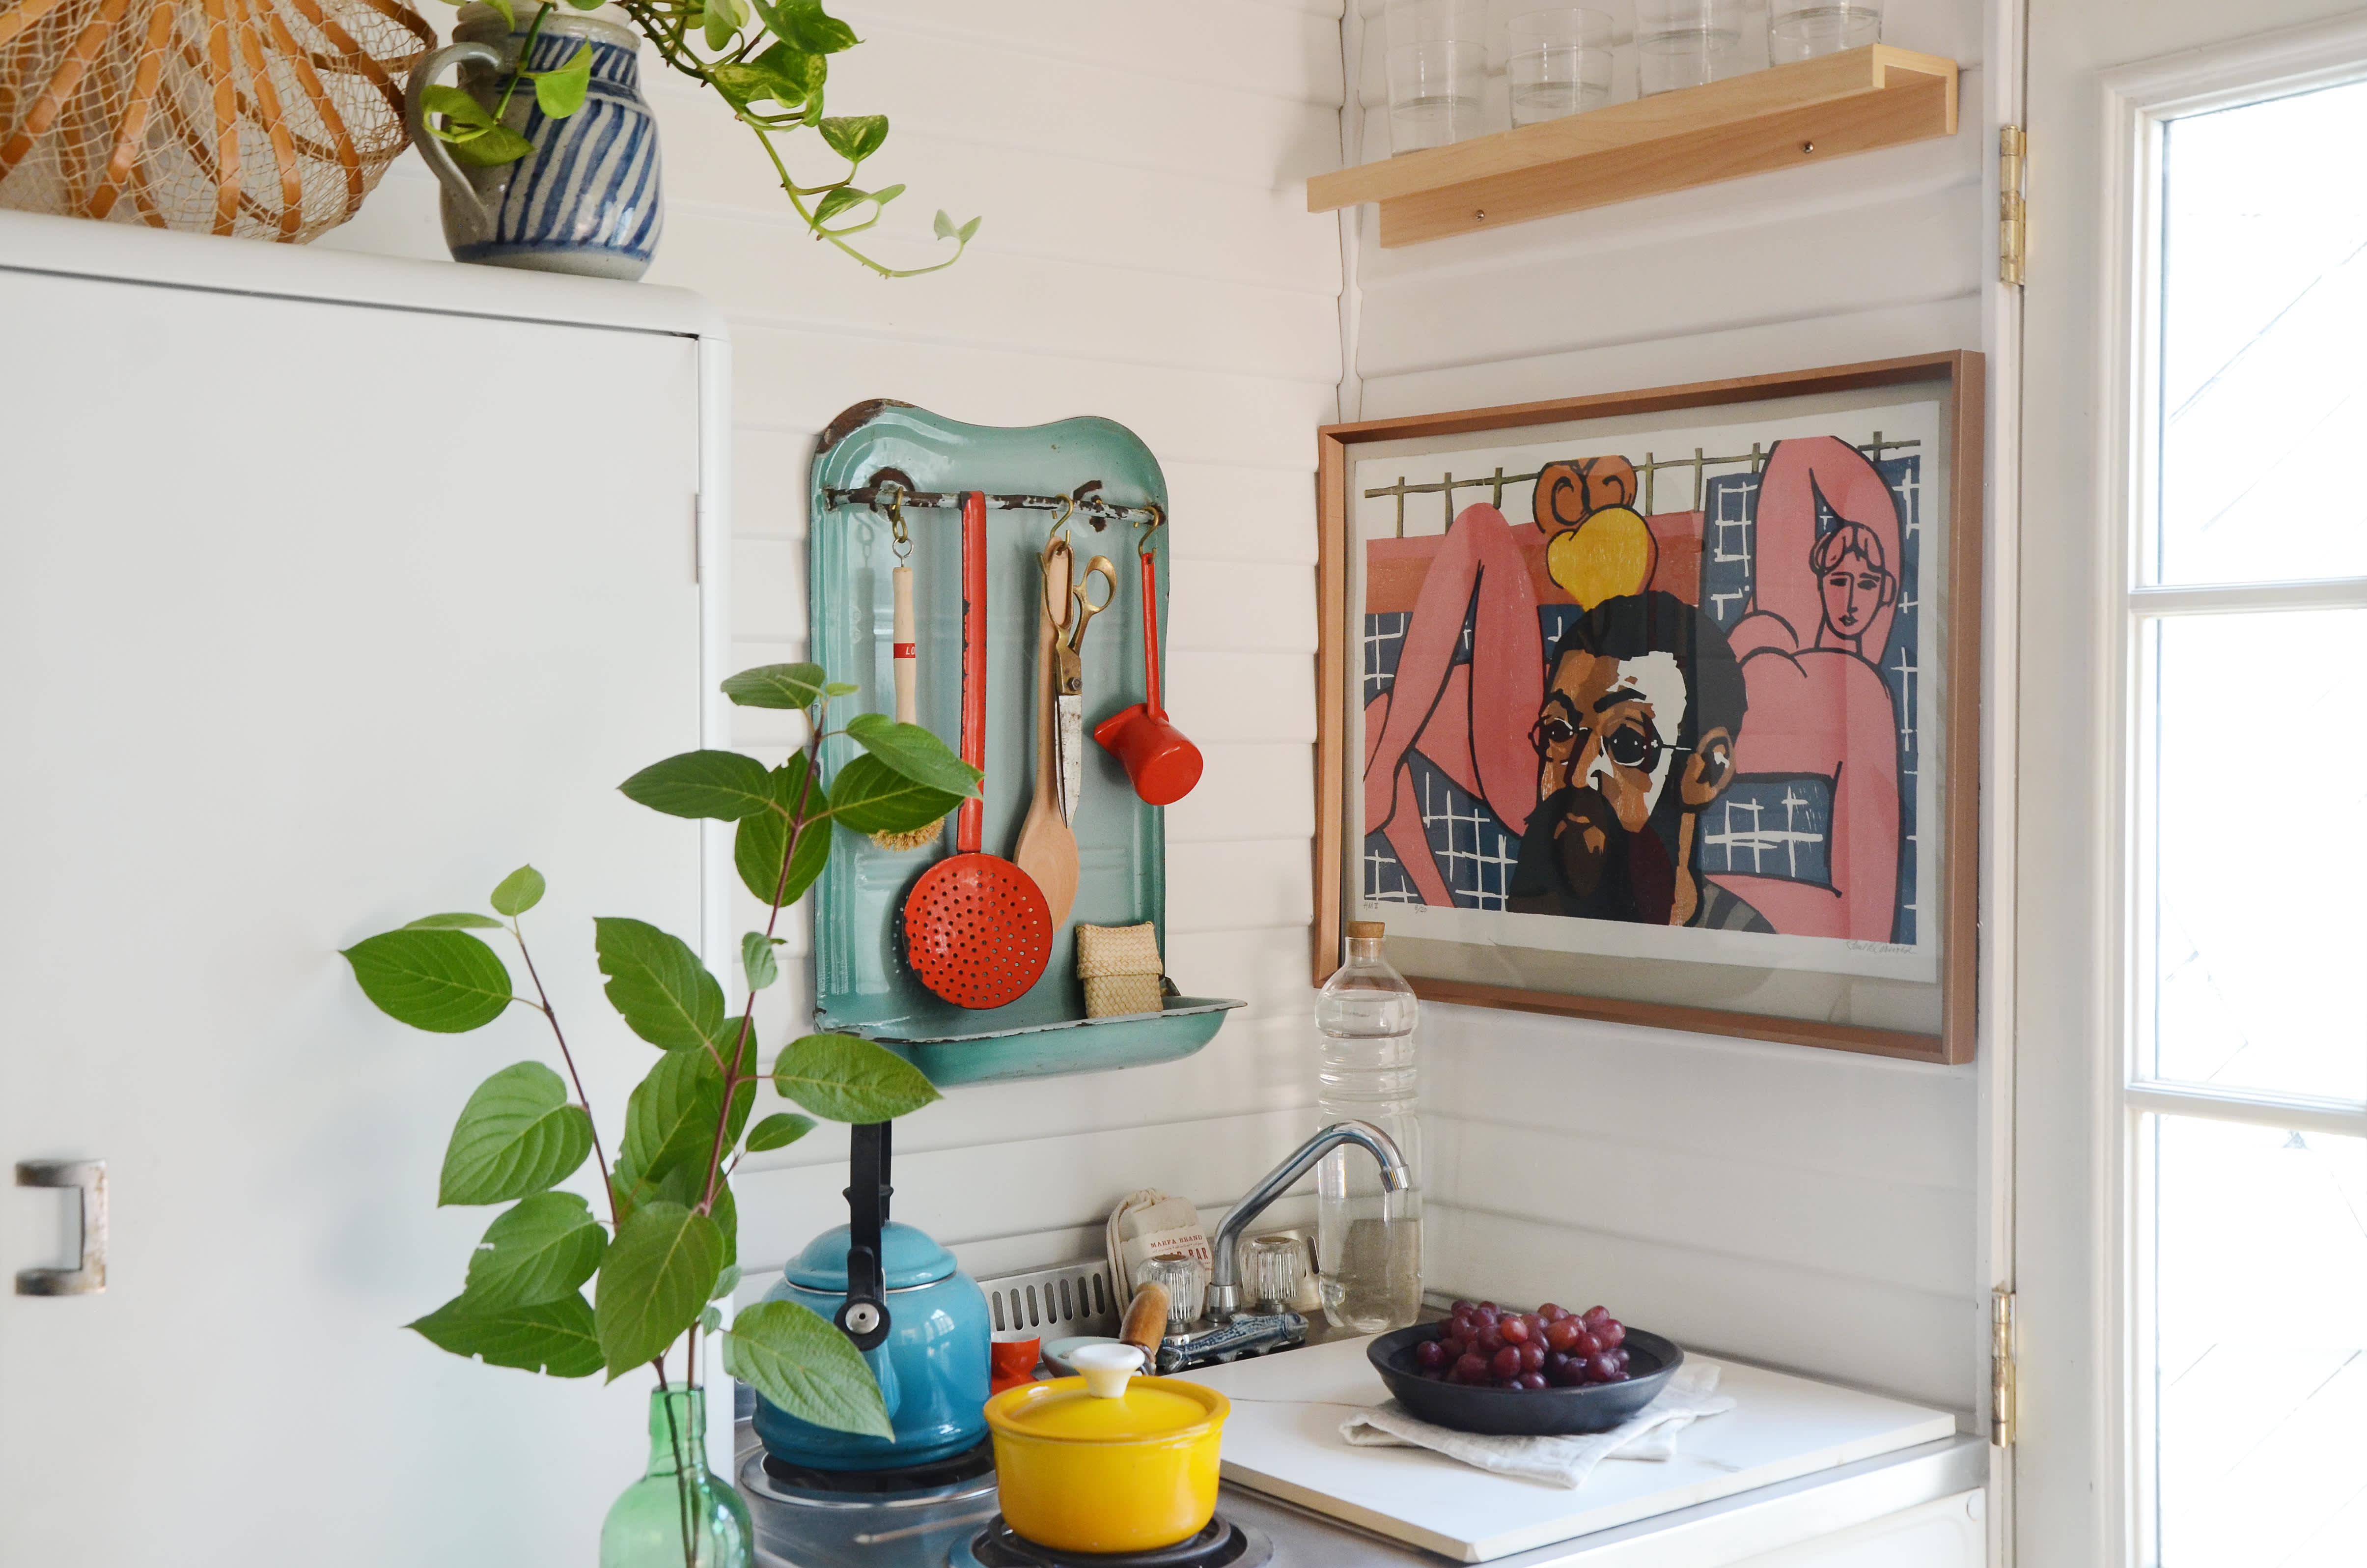 House Tour: A Garage Turned 200-Square-Foot Bungalow